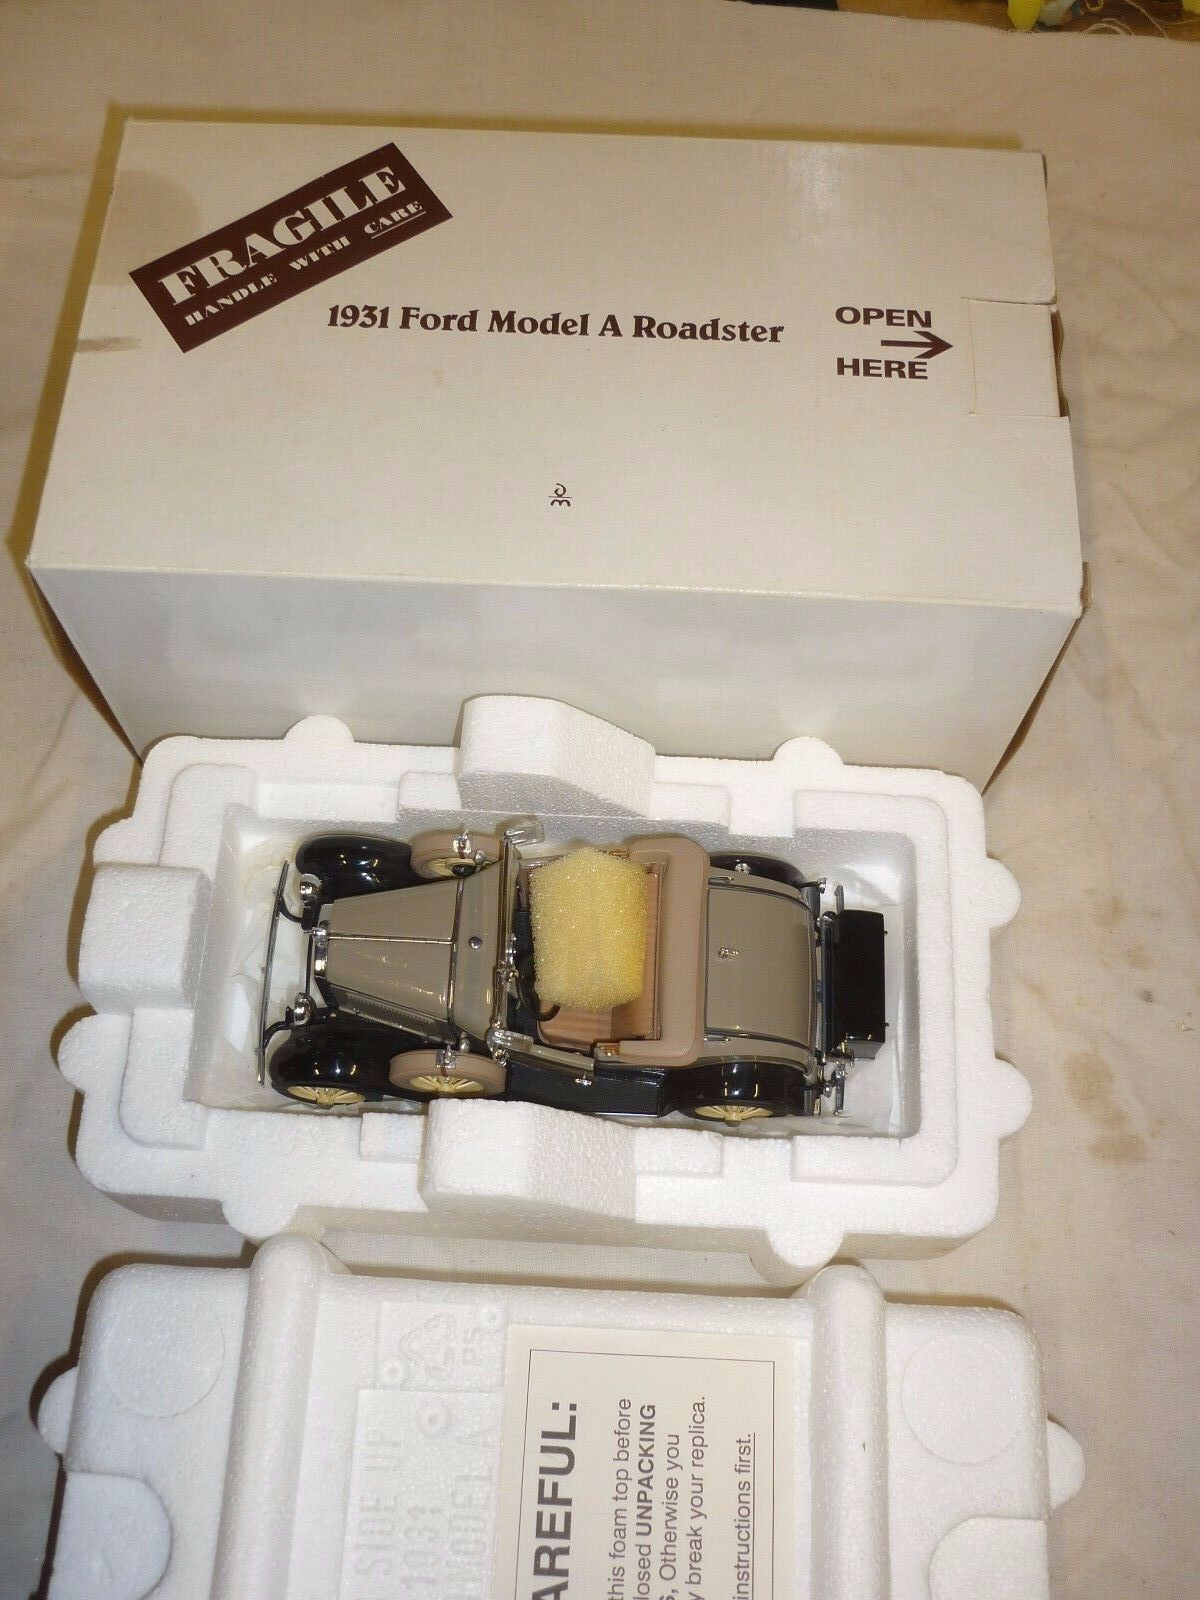 DANBURY Comme neuf 1931 FORD MODEL A ROADSTER, sans papiers, Boxed, (NMB)